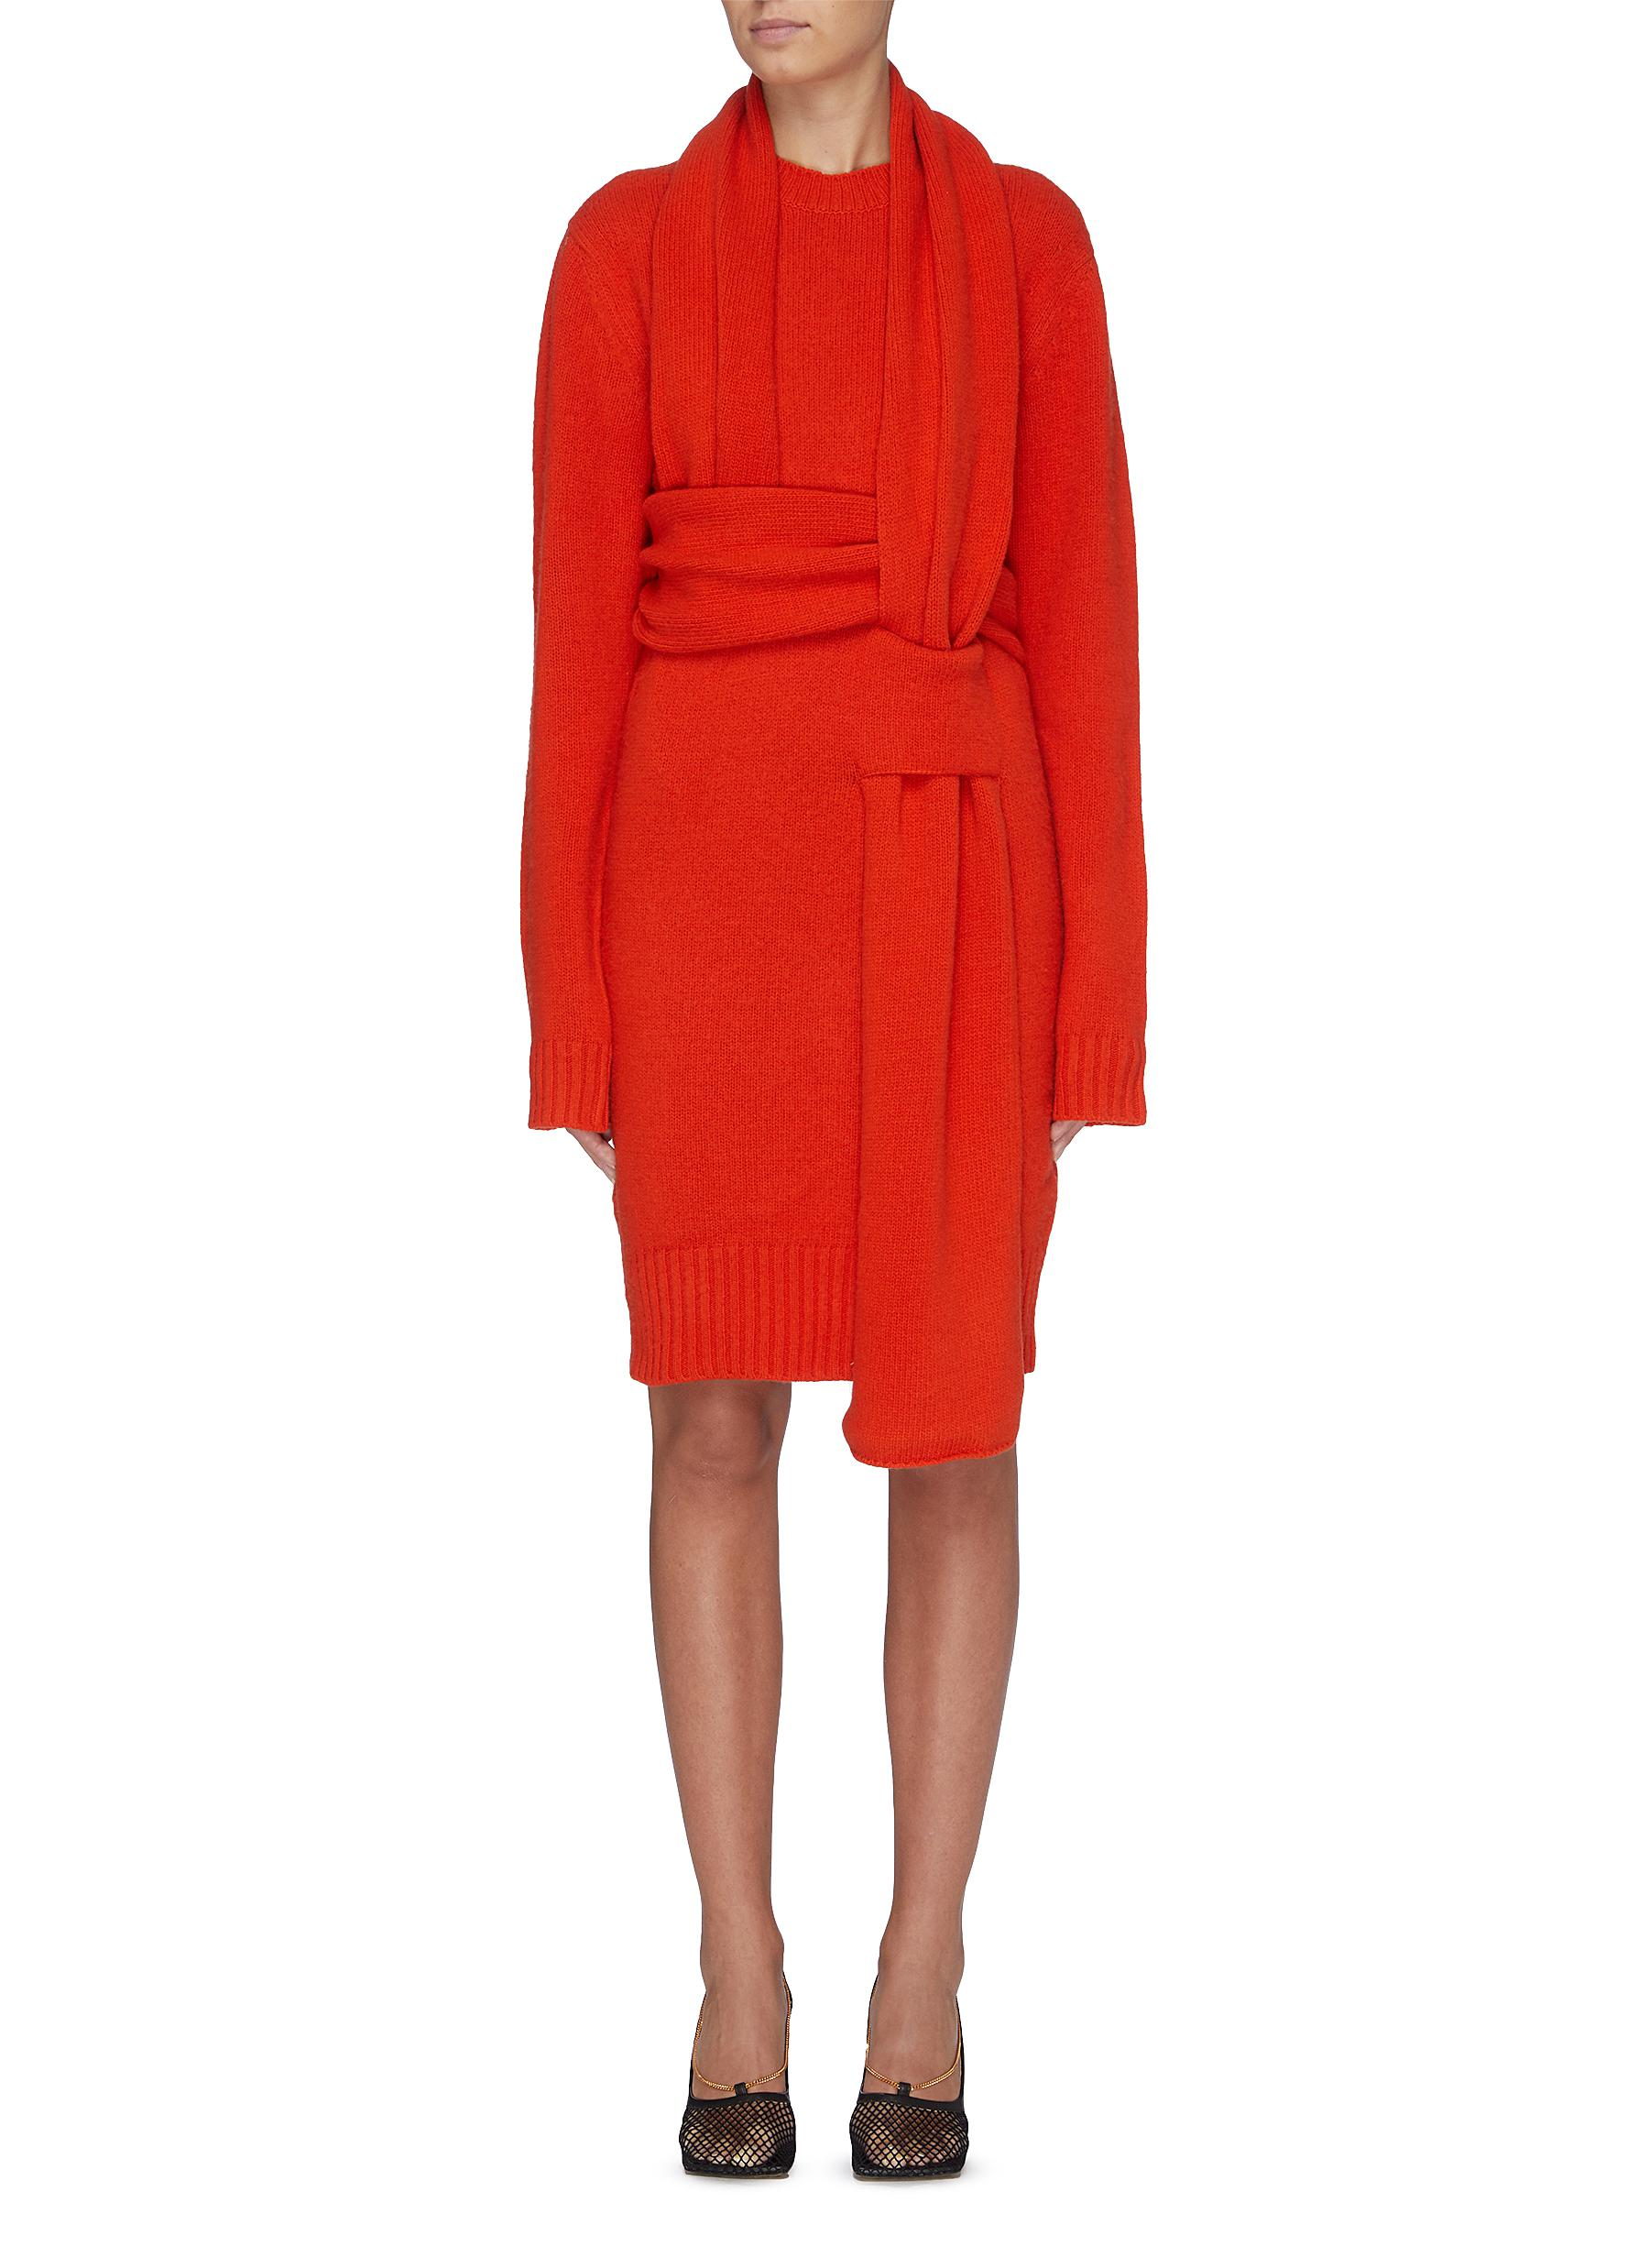 Intercciato interlock sash knit dress by Bottega Veneta